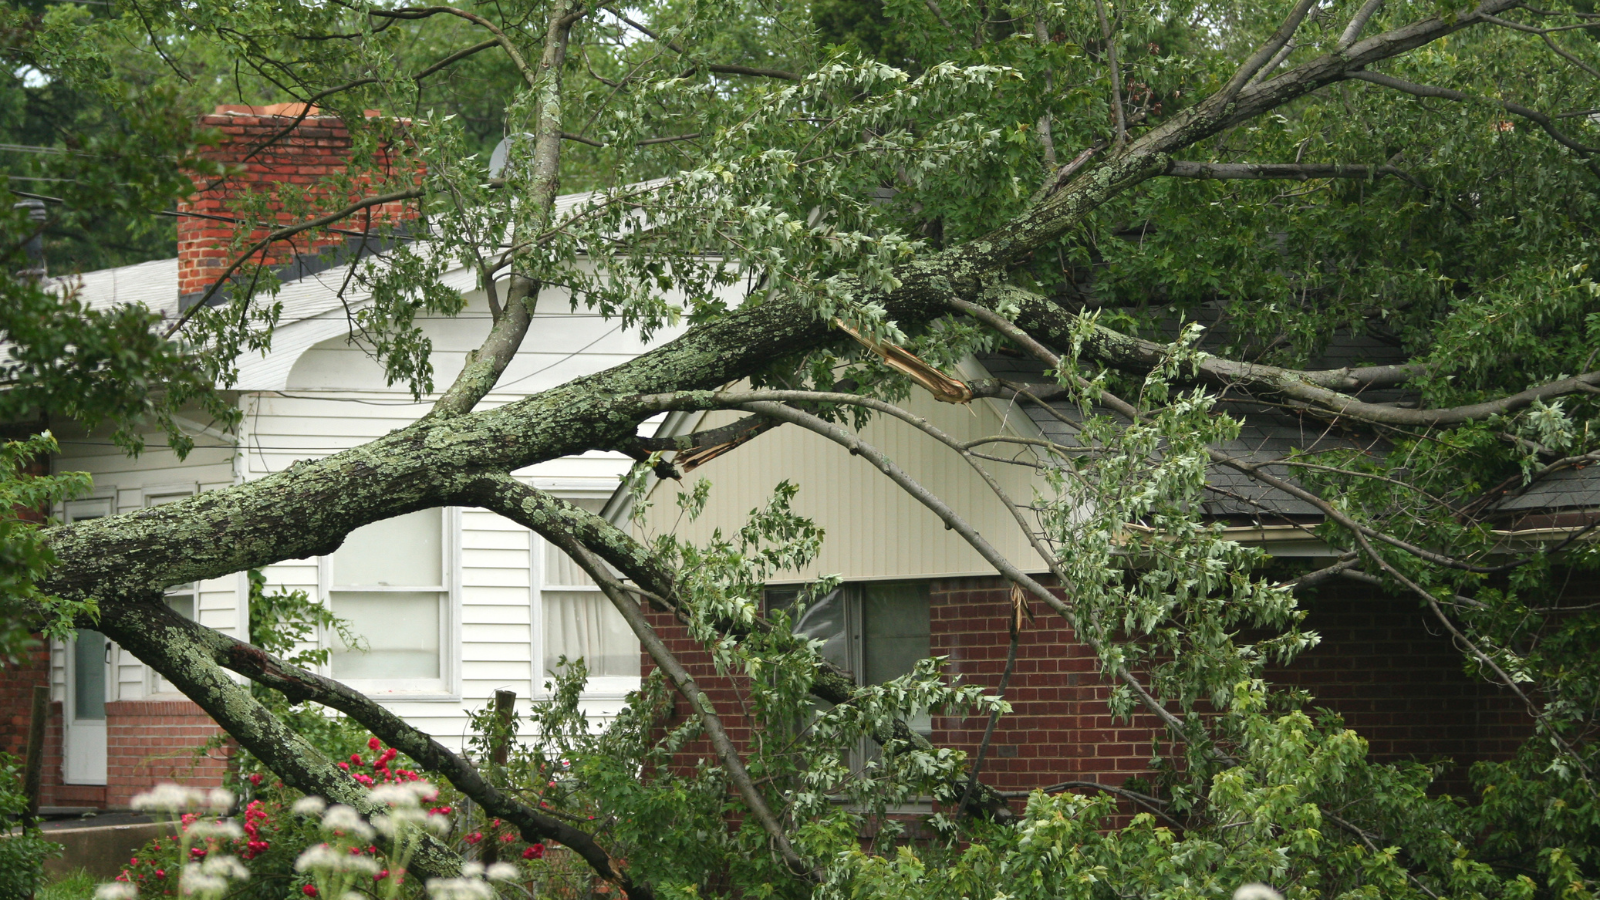 How to Prevent Roof Damage From Storms